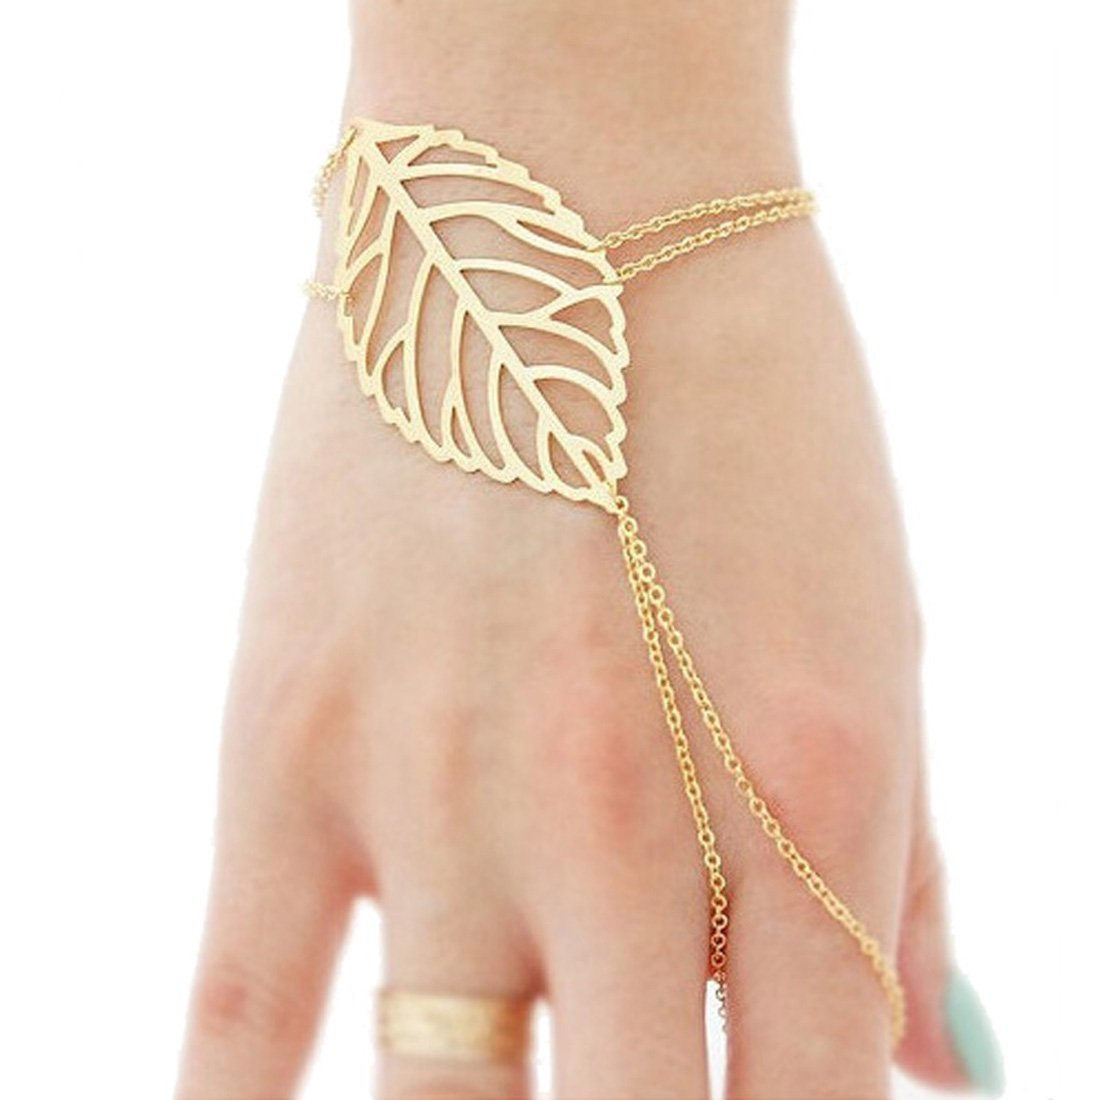 women canada bangle leaves bracelet ring finger amazon slave gold bestpriceam woman ae dp fashion hollow bracelets chain